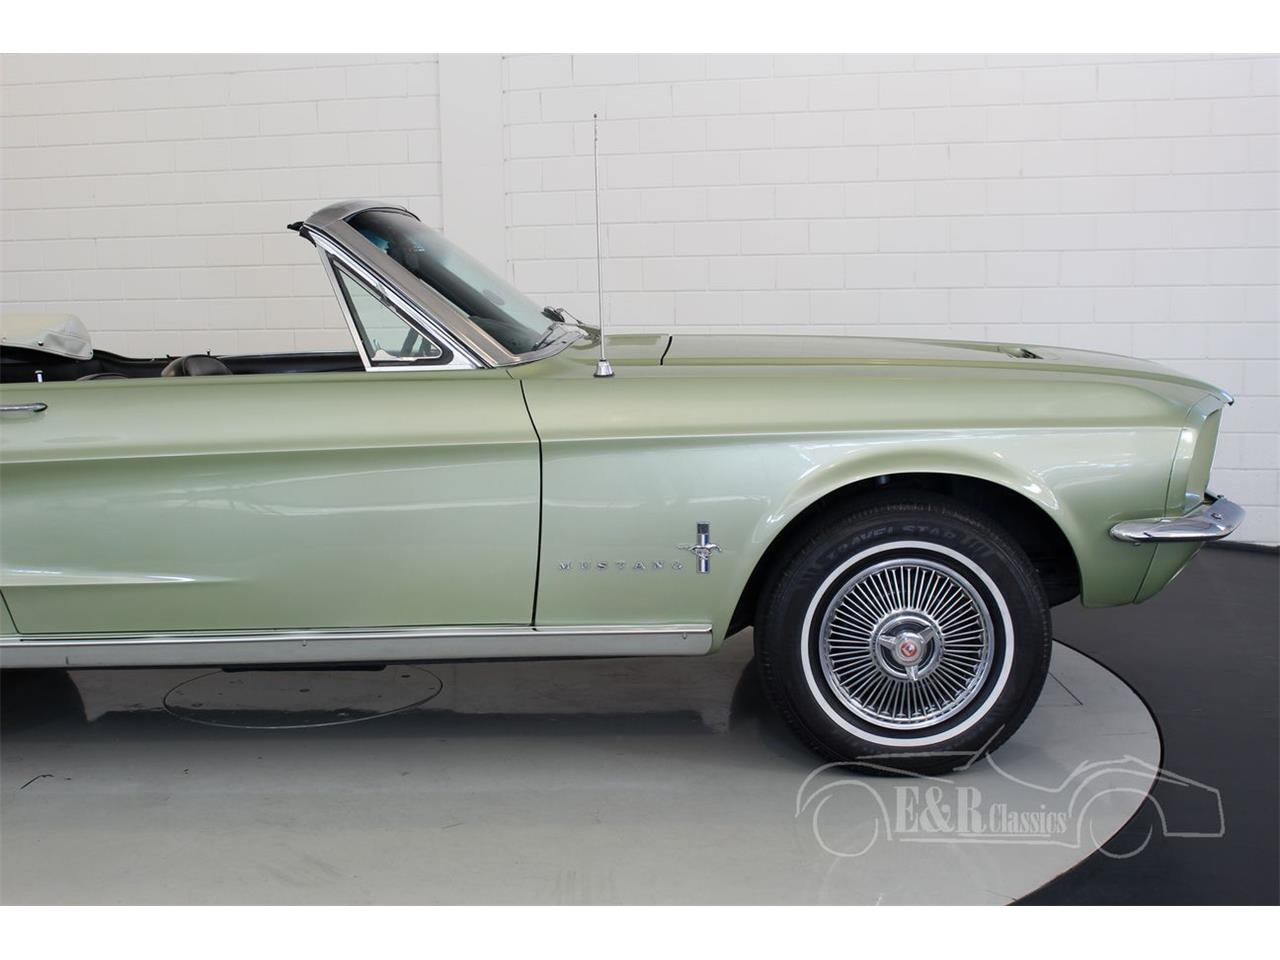 Large Picture of 1967 Ford Mustang located in Waalwijk noord brabant - $39,035.00 - Q2ZB